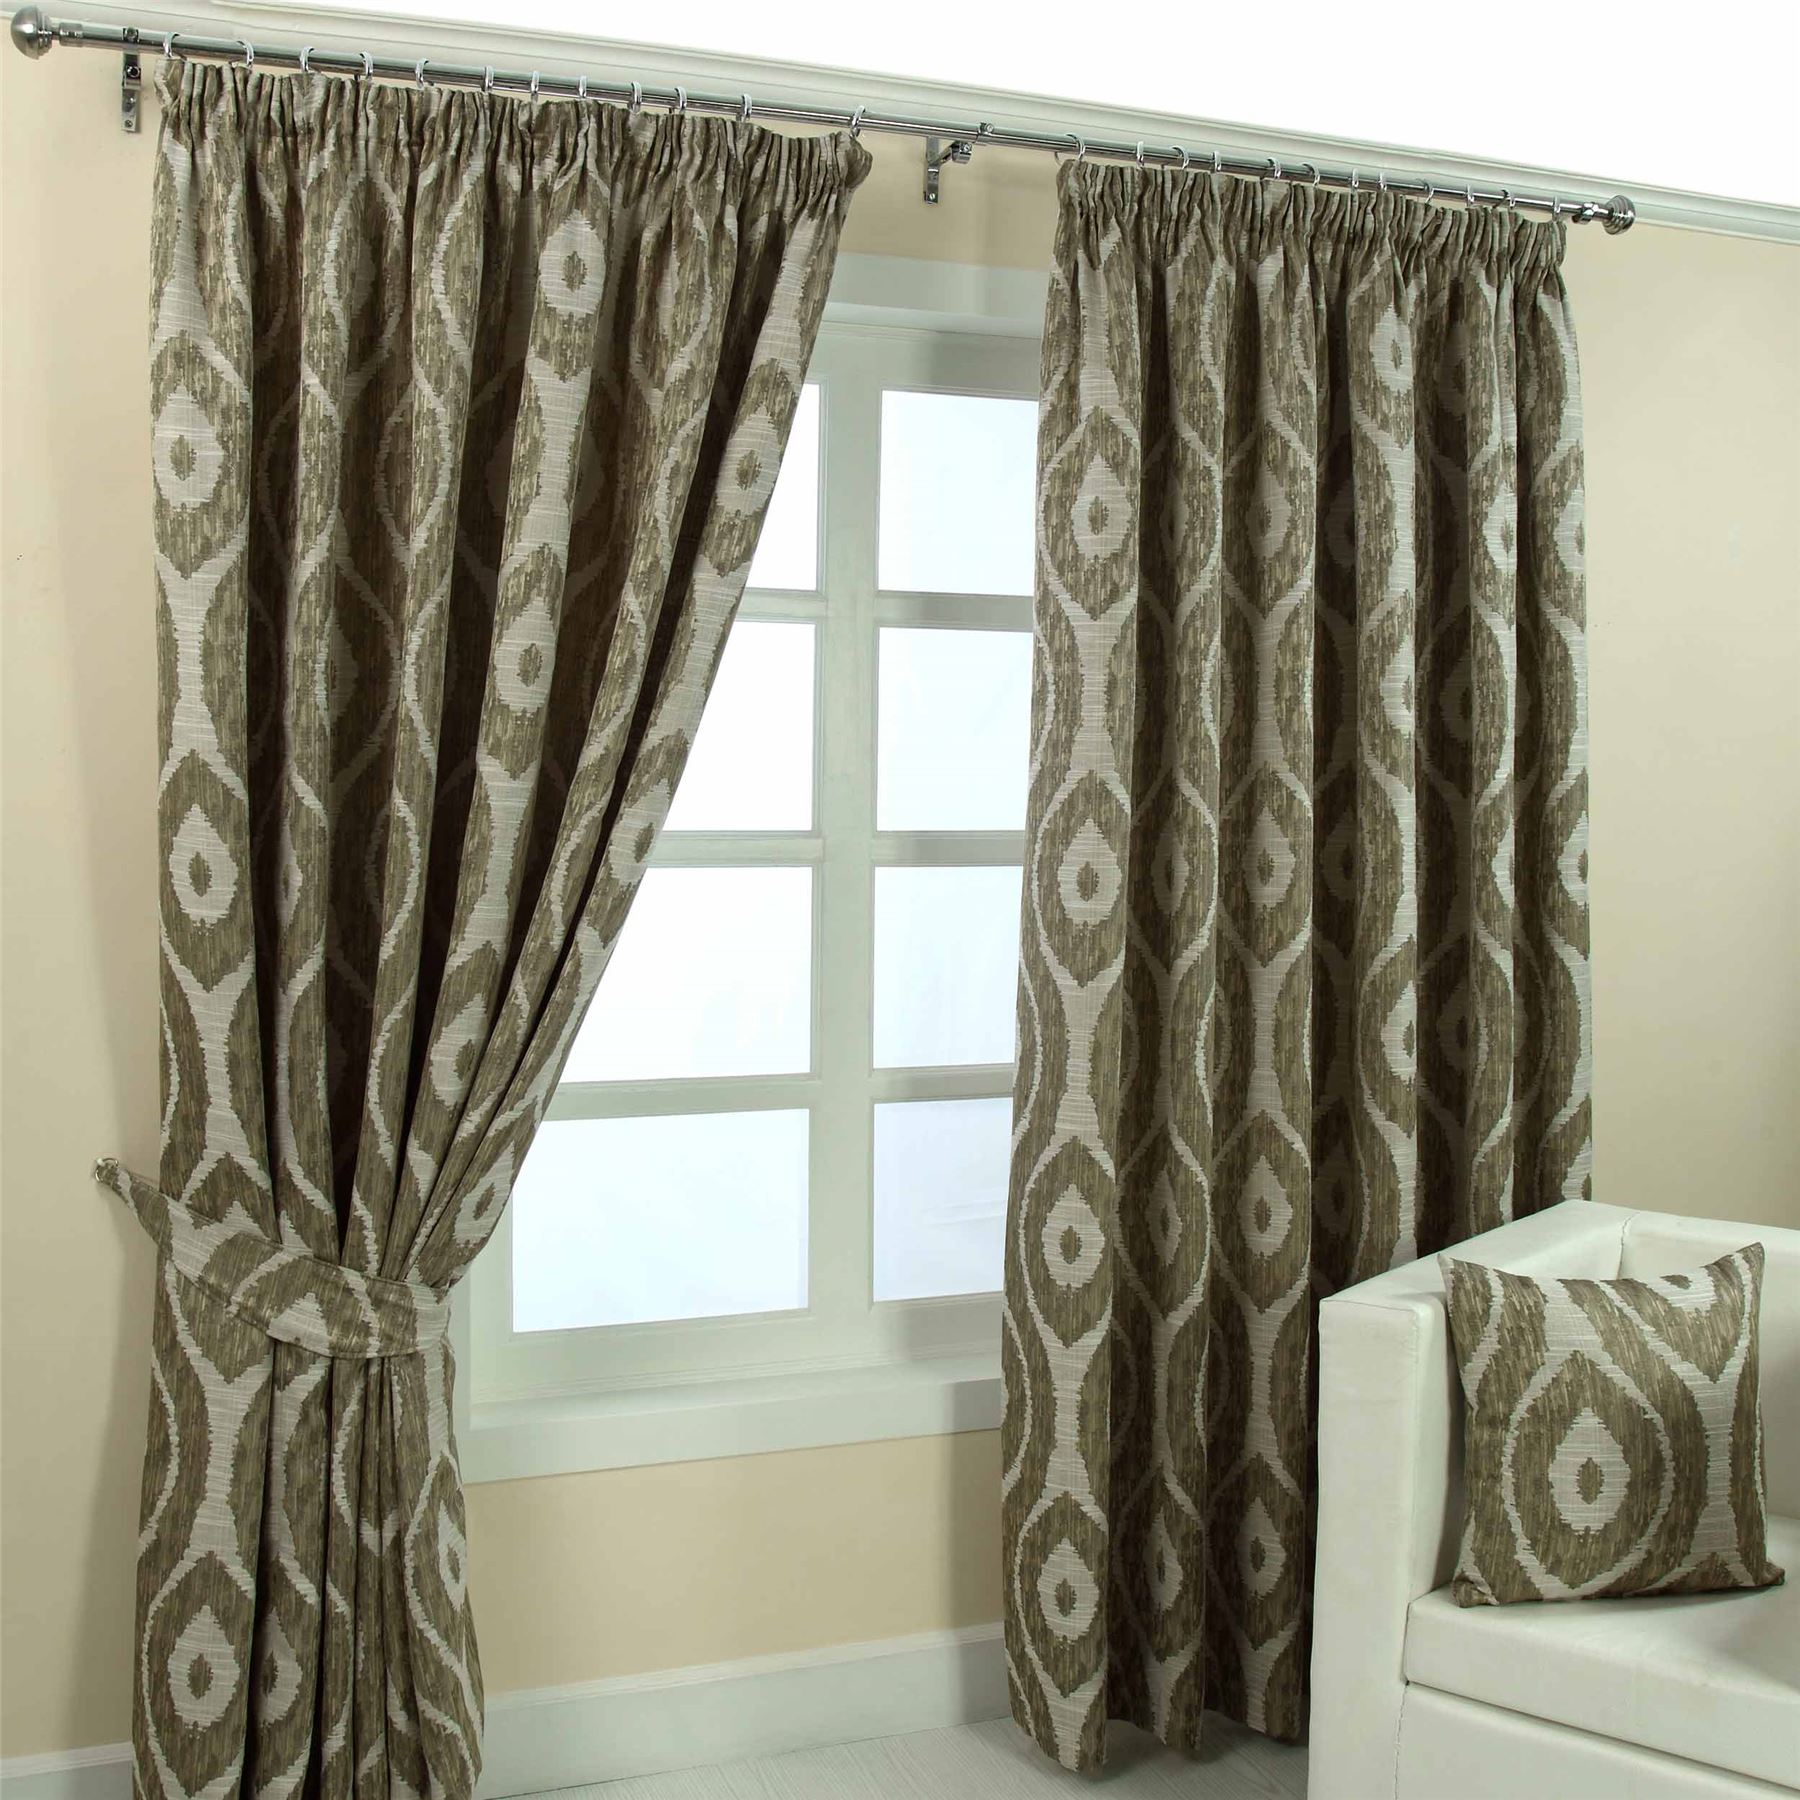 curtain uk urban municipal stone made terrys curtains ready delivery products fabrics readymade